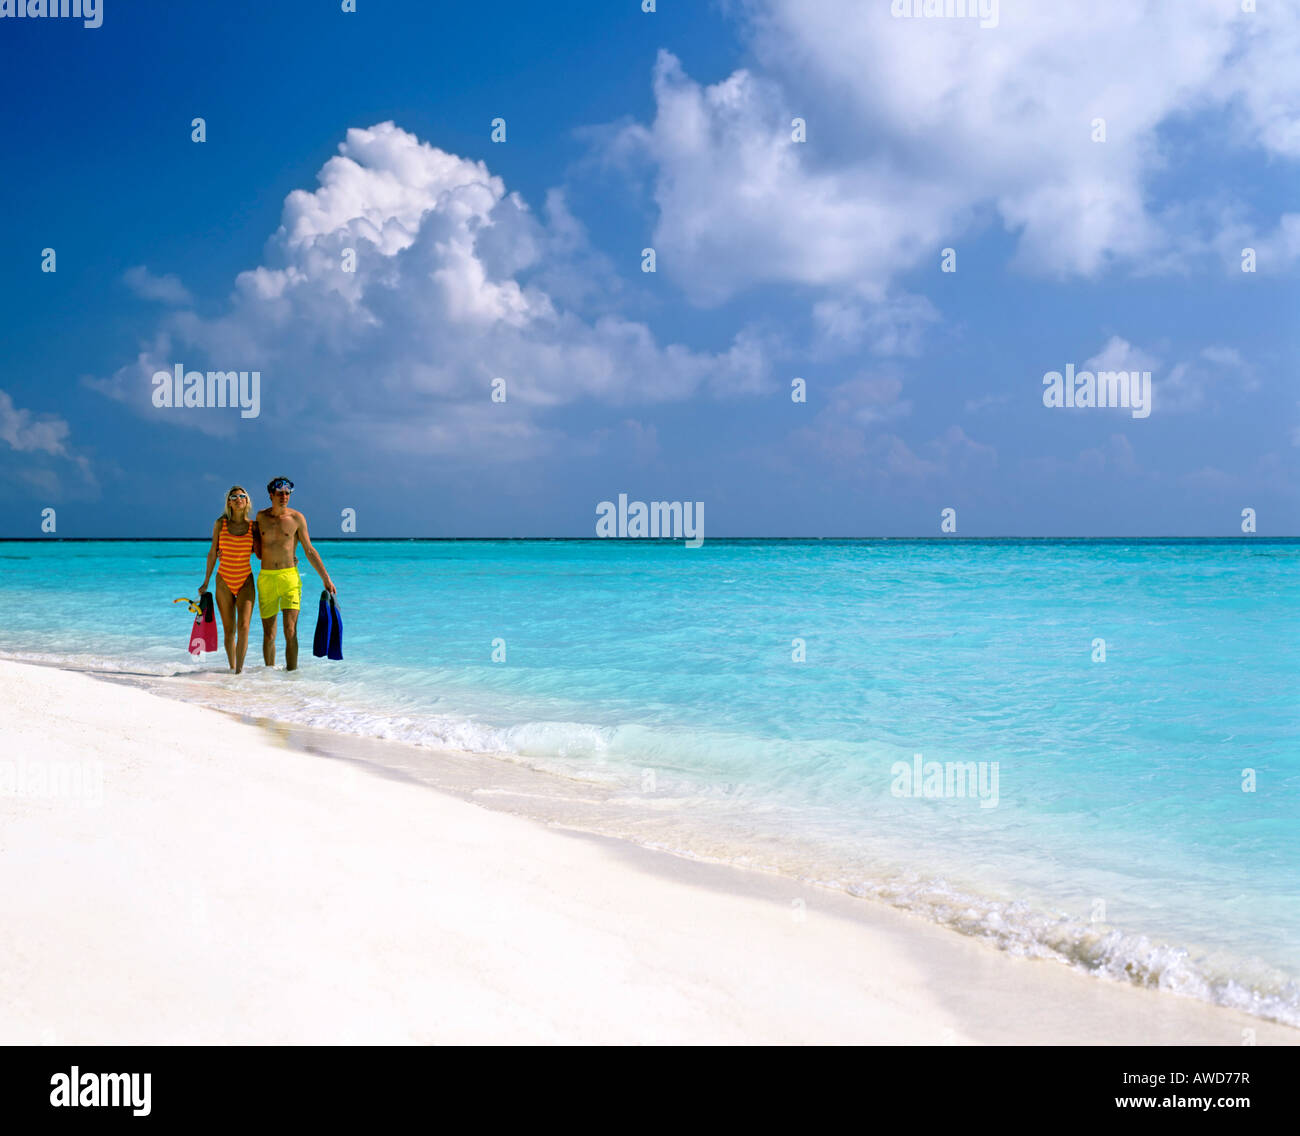 Young couple with snorkeling gear walking in shallow water, sandy beach, Maldives, Indian Ocean Stock Photo